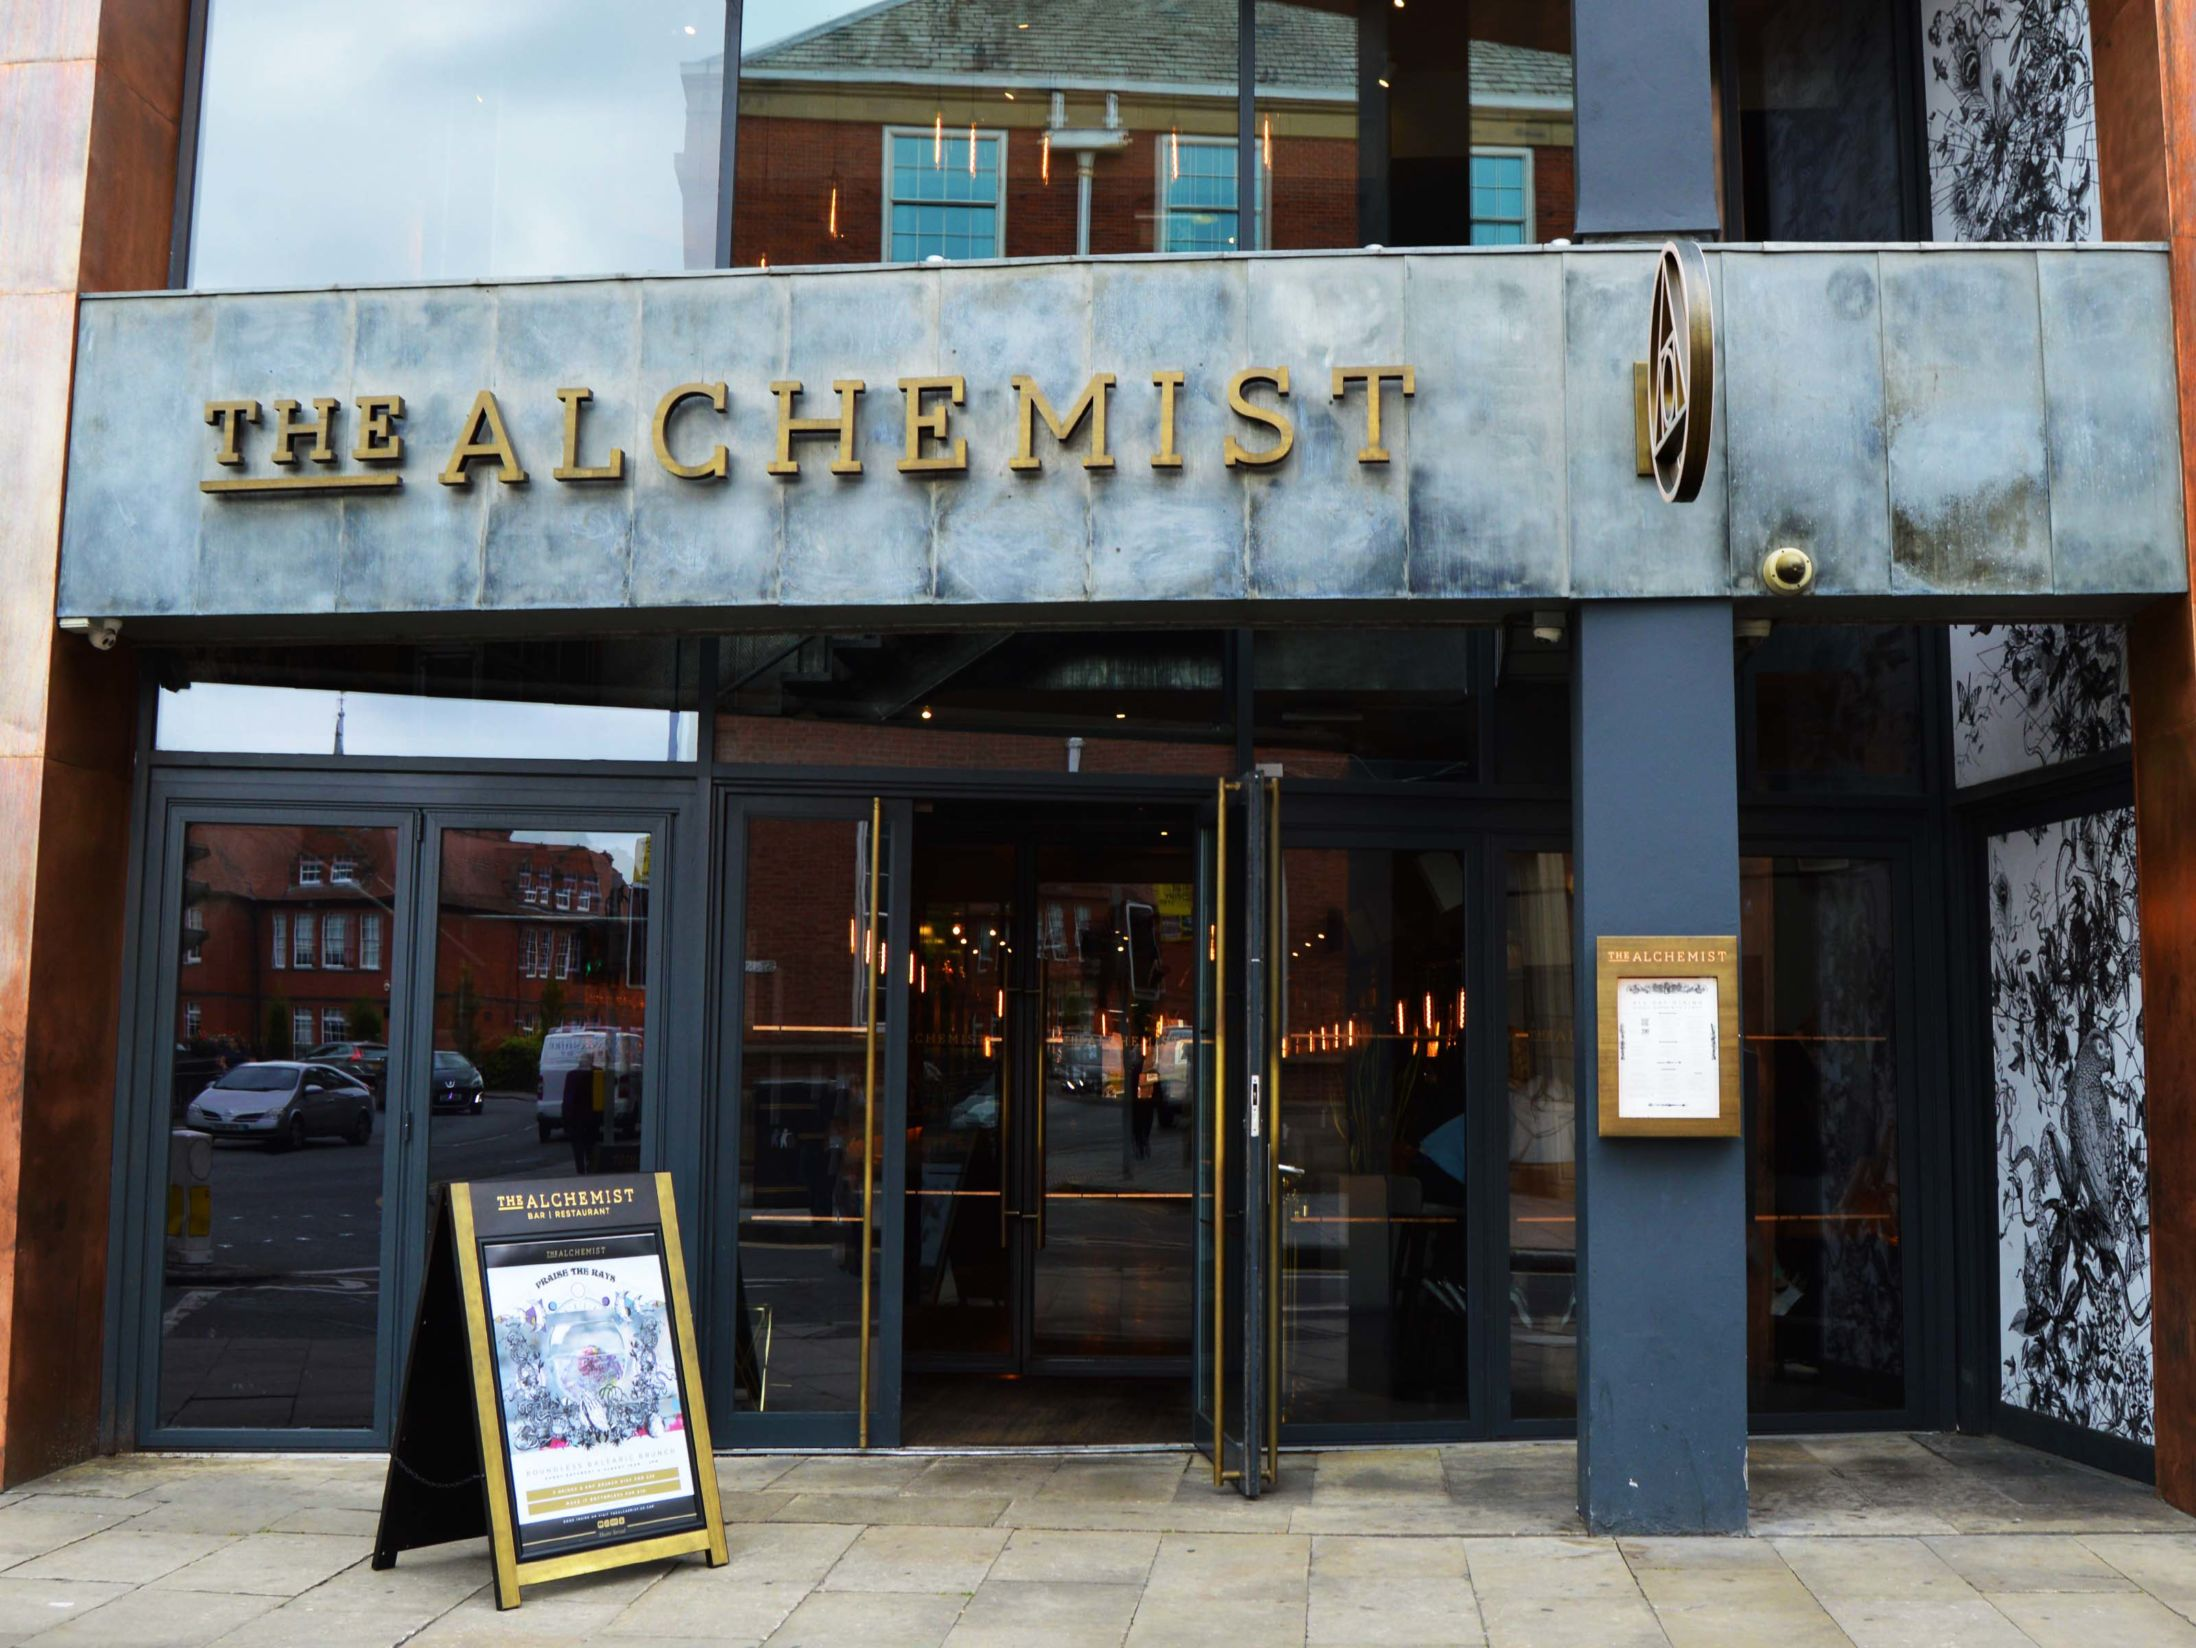 The Alchemist - Cocktail Bars in Chester